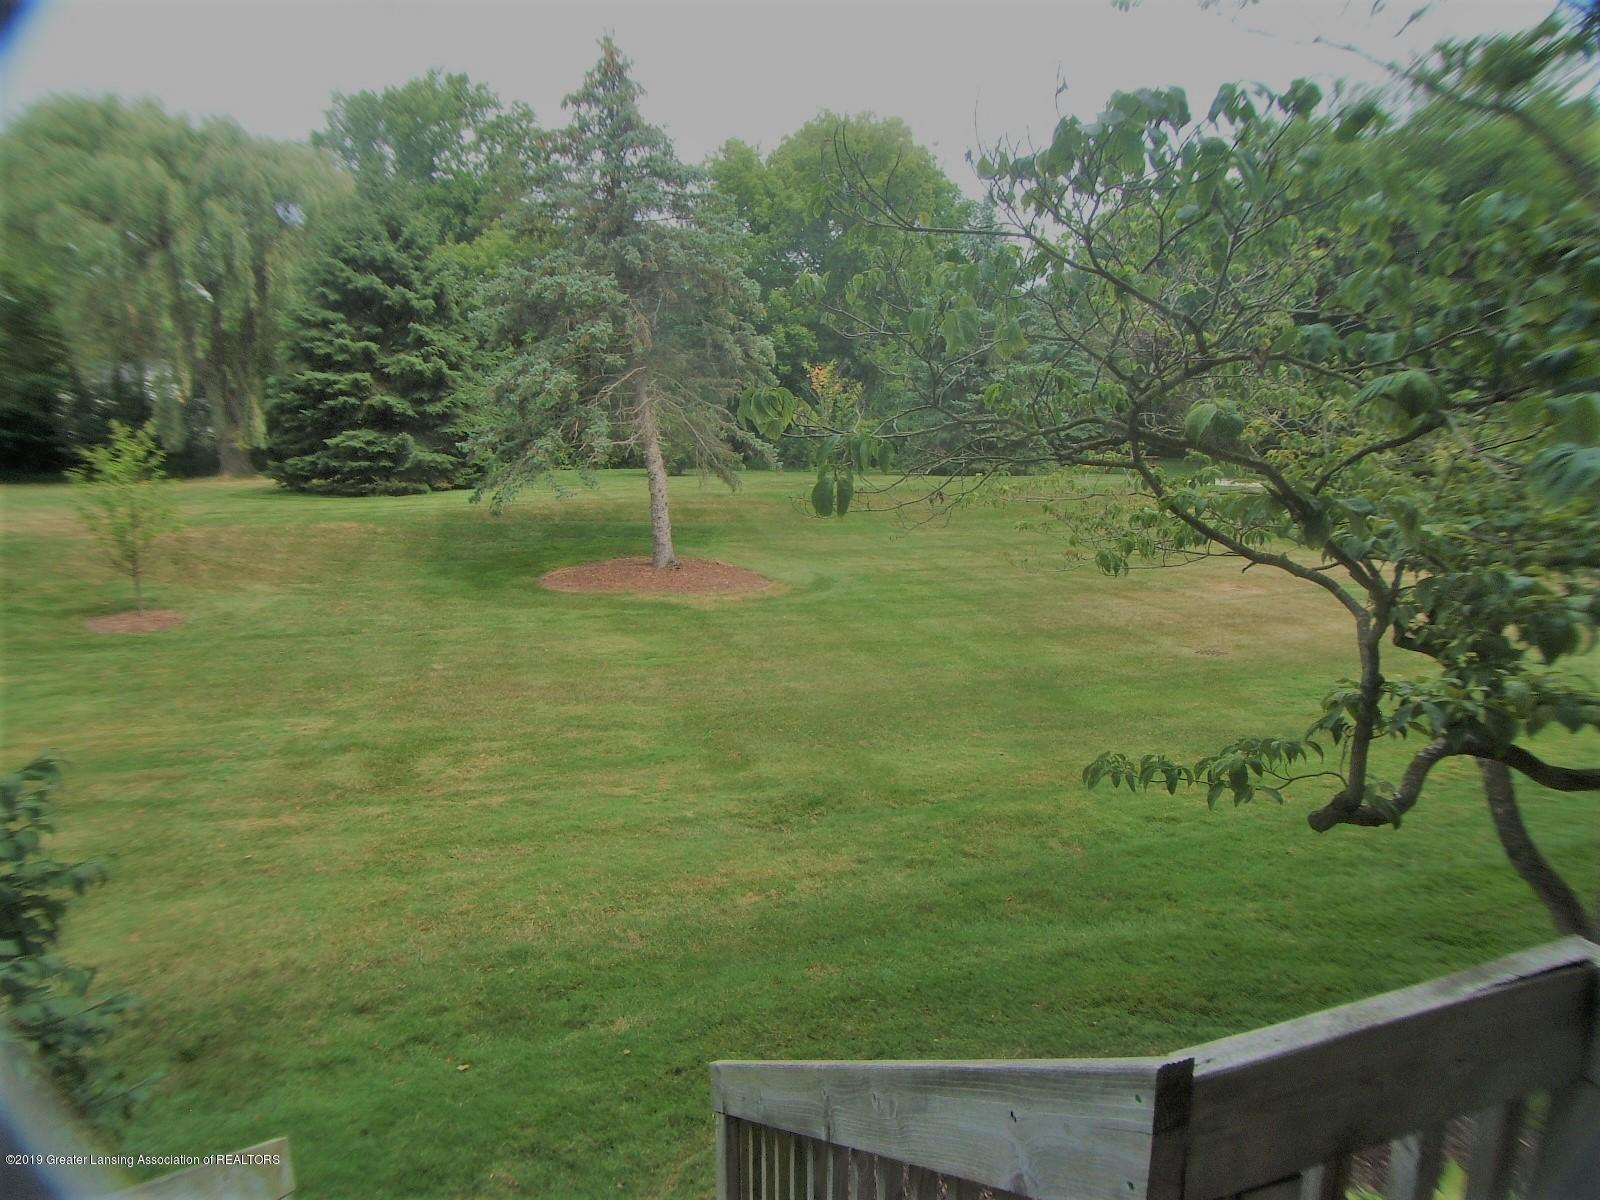 2934 Mt Hope Rd 01 - View out back door - 6